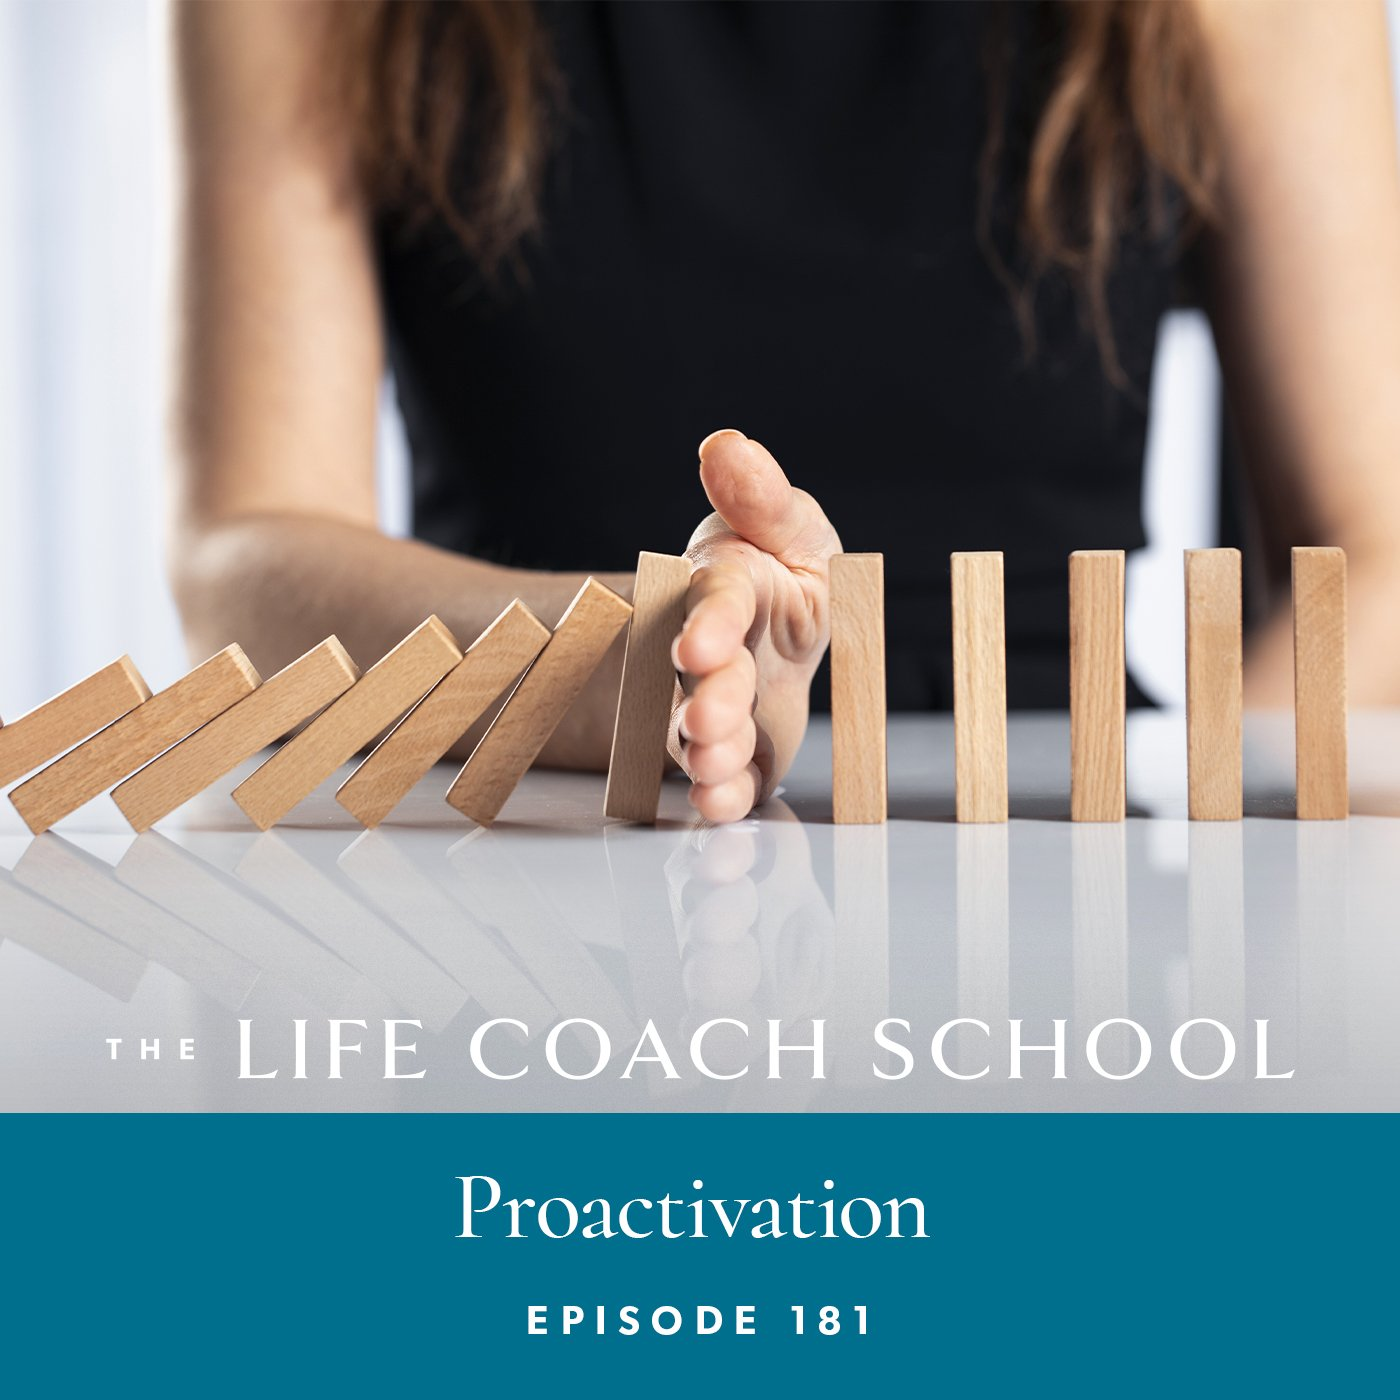 The Life Coach School Podcast with Brooke Castillo | Episode 181 | Proactivation